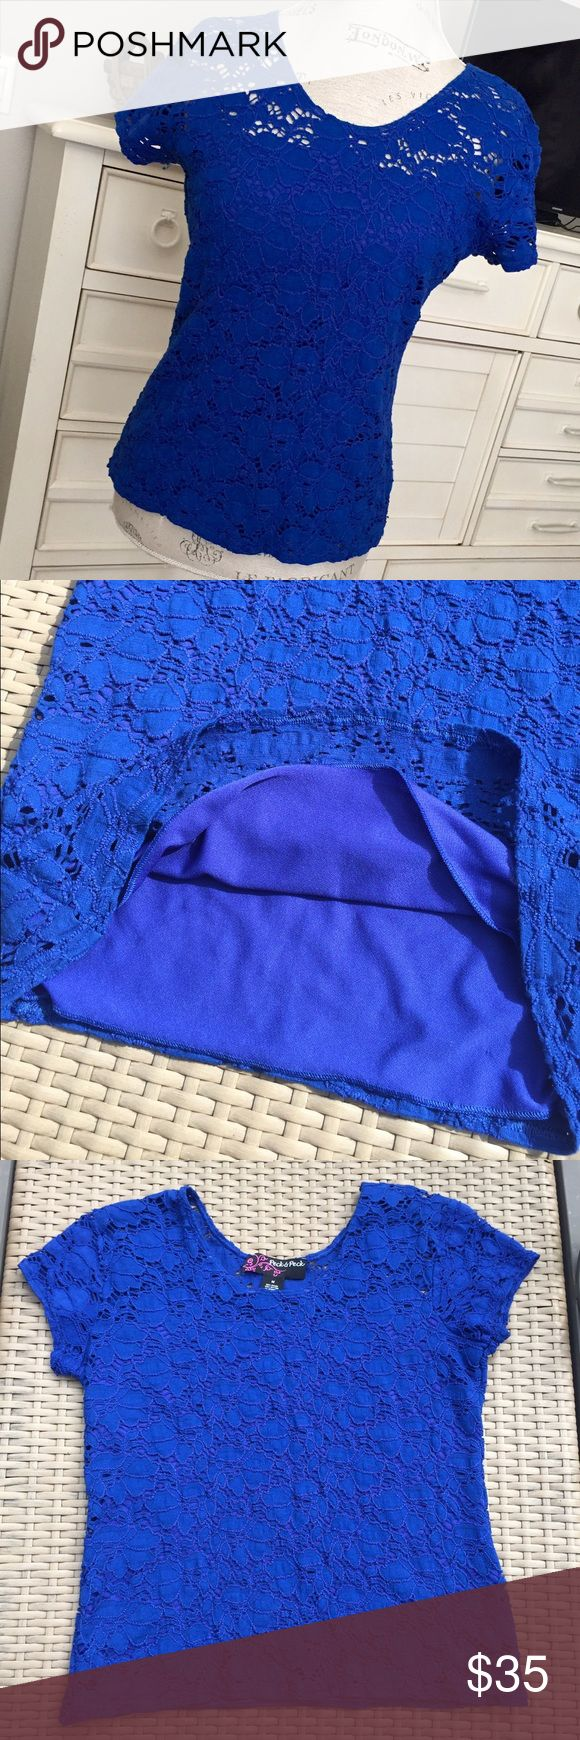 "Peck & Peck lace lined royal blue short sleeve top Beautiful & comfy to wear with a pair of shorts or to dress it up for the office or evening! Royal blue stylish & feminine top...this won't last long! 23"" in length & 19"" armpit to armpit. Peck & Peck Tops Tees - Short Sleeve"